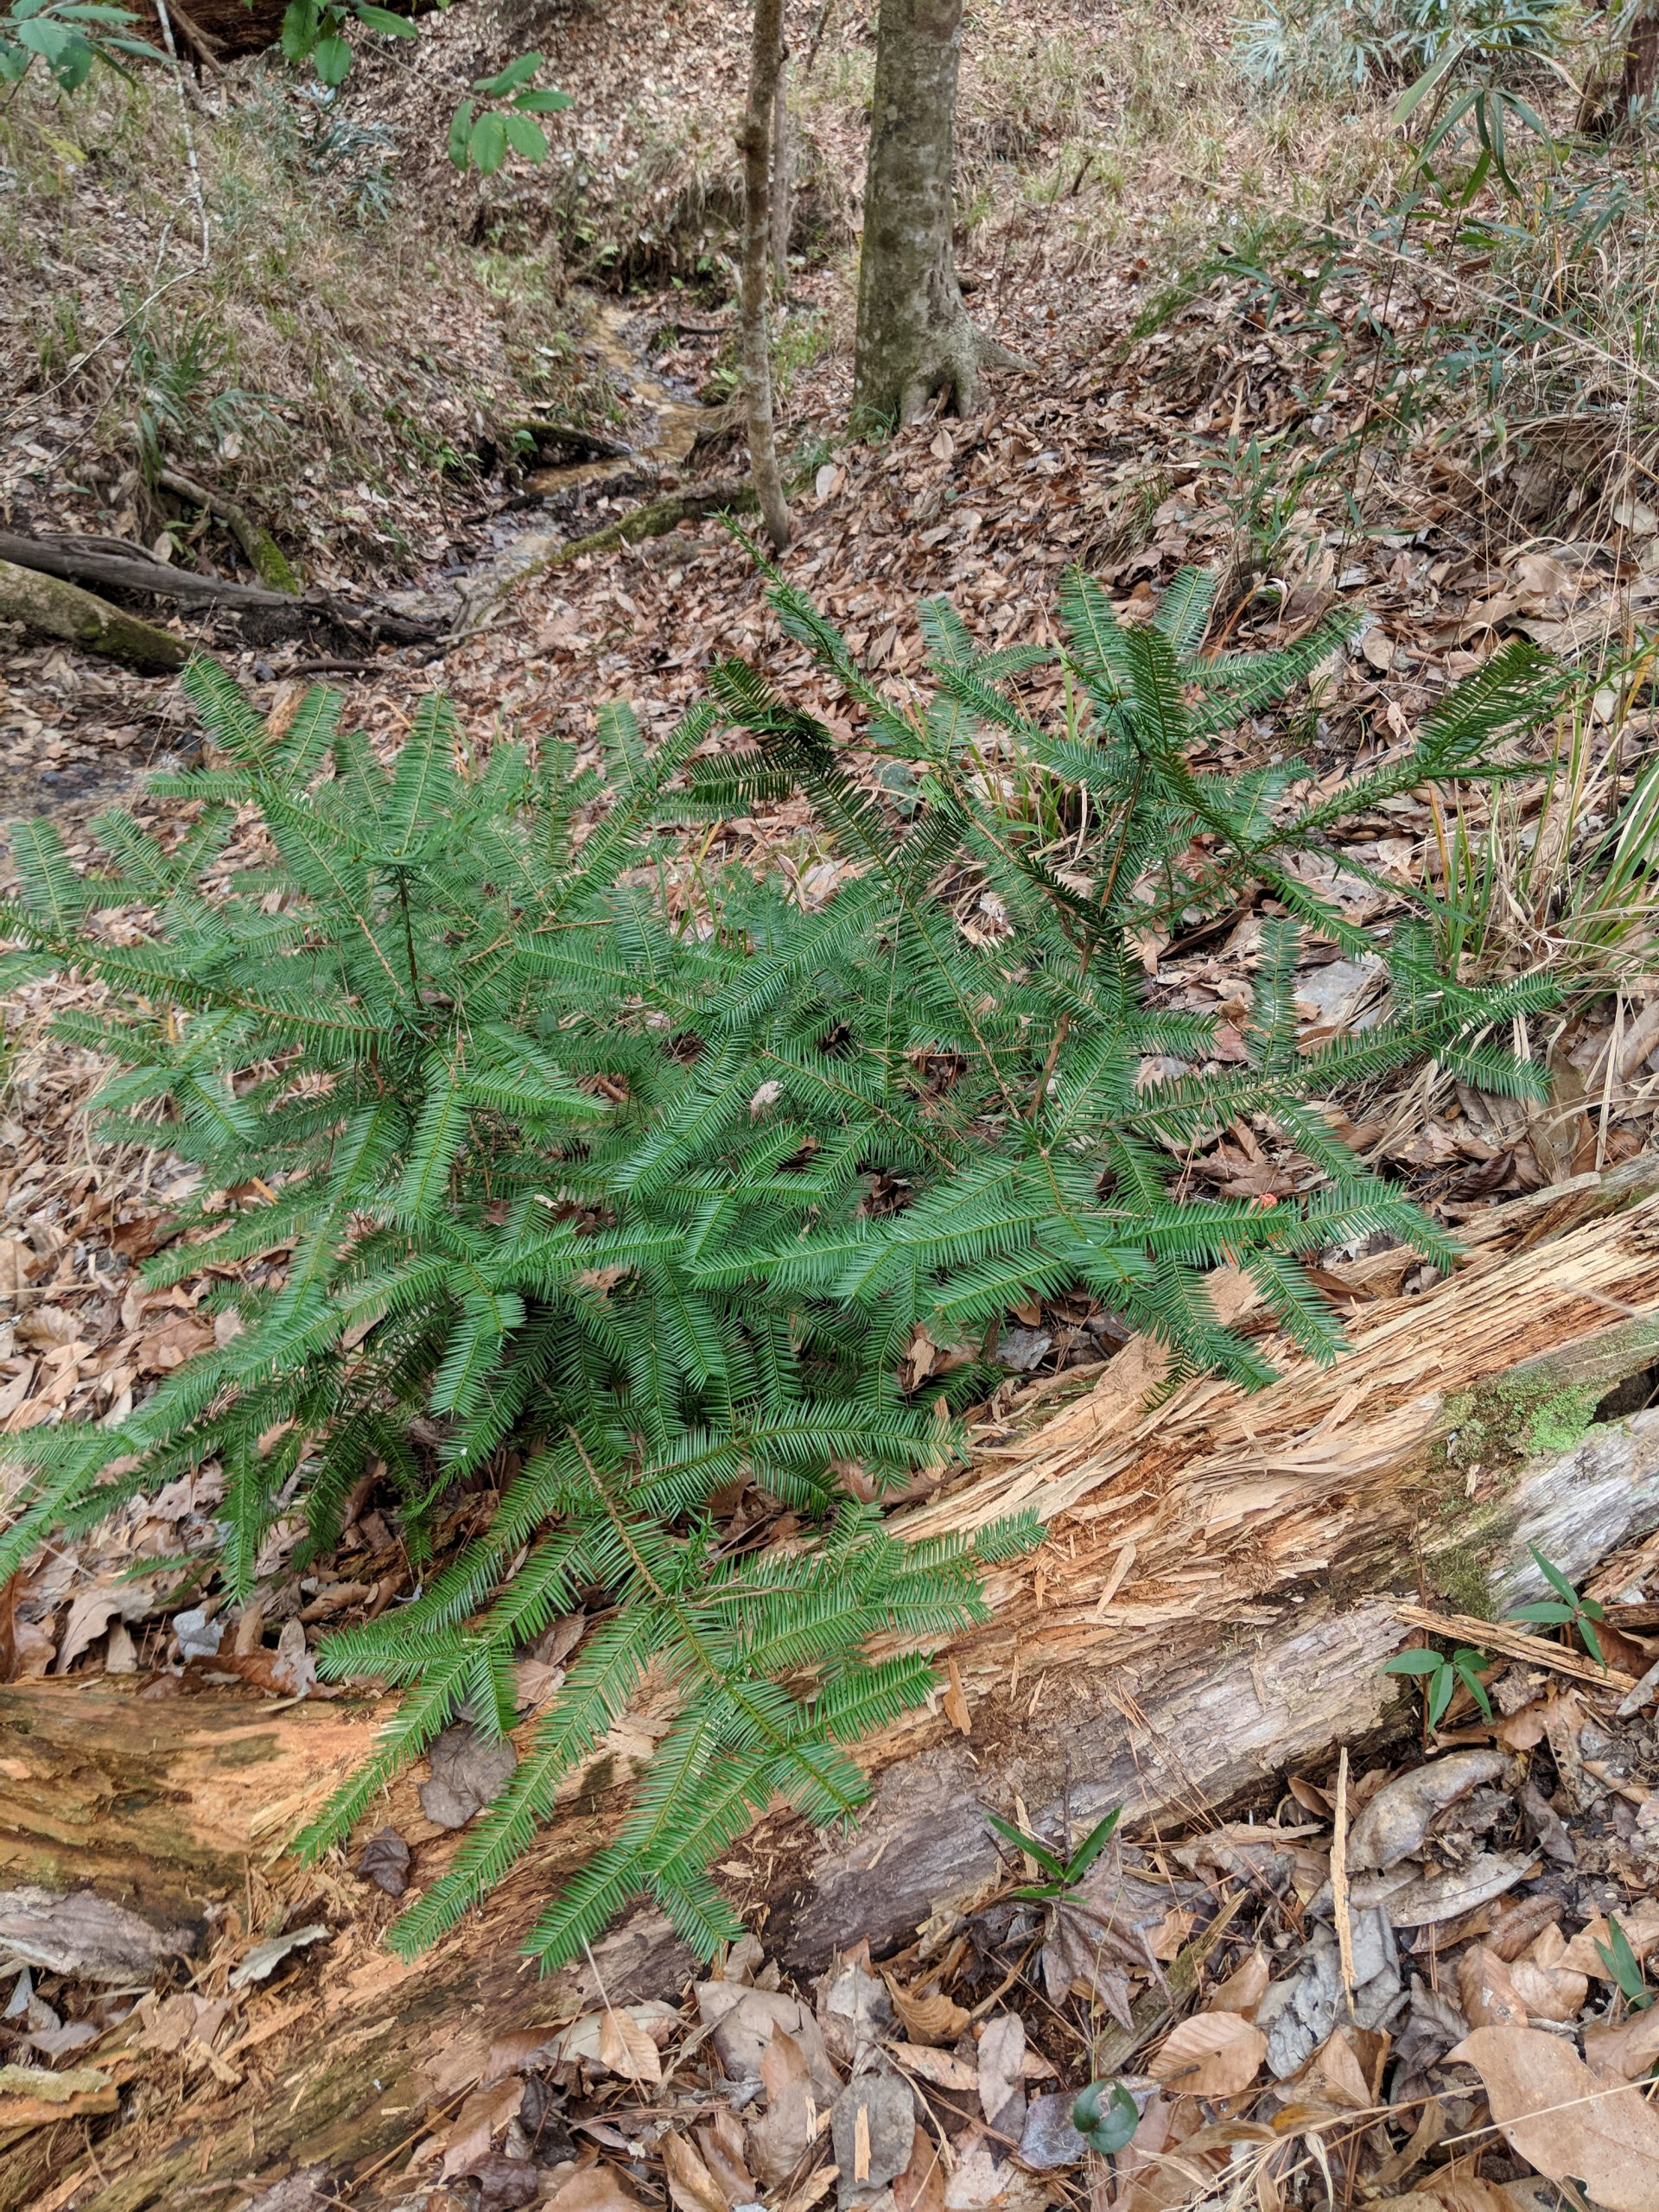 Impacted by a fungal infection, many of the Torreya in the wild are short and shrubby.